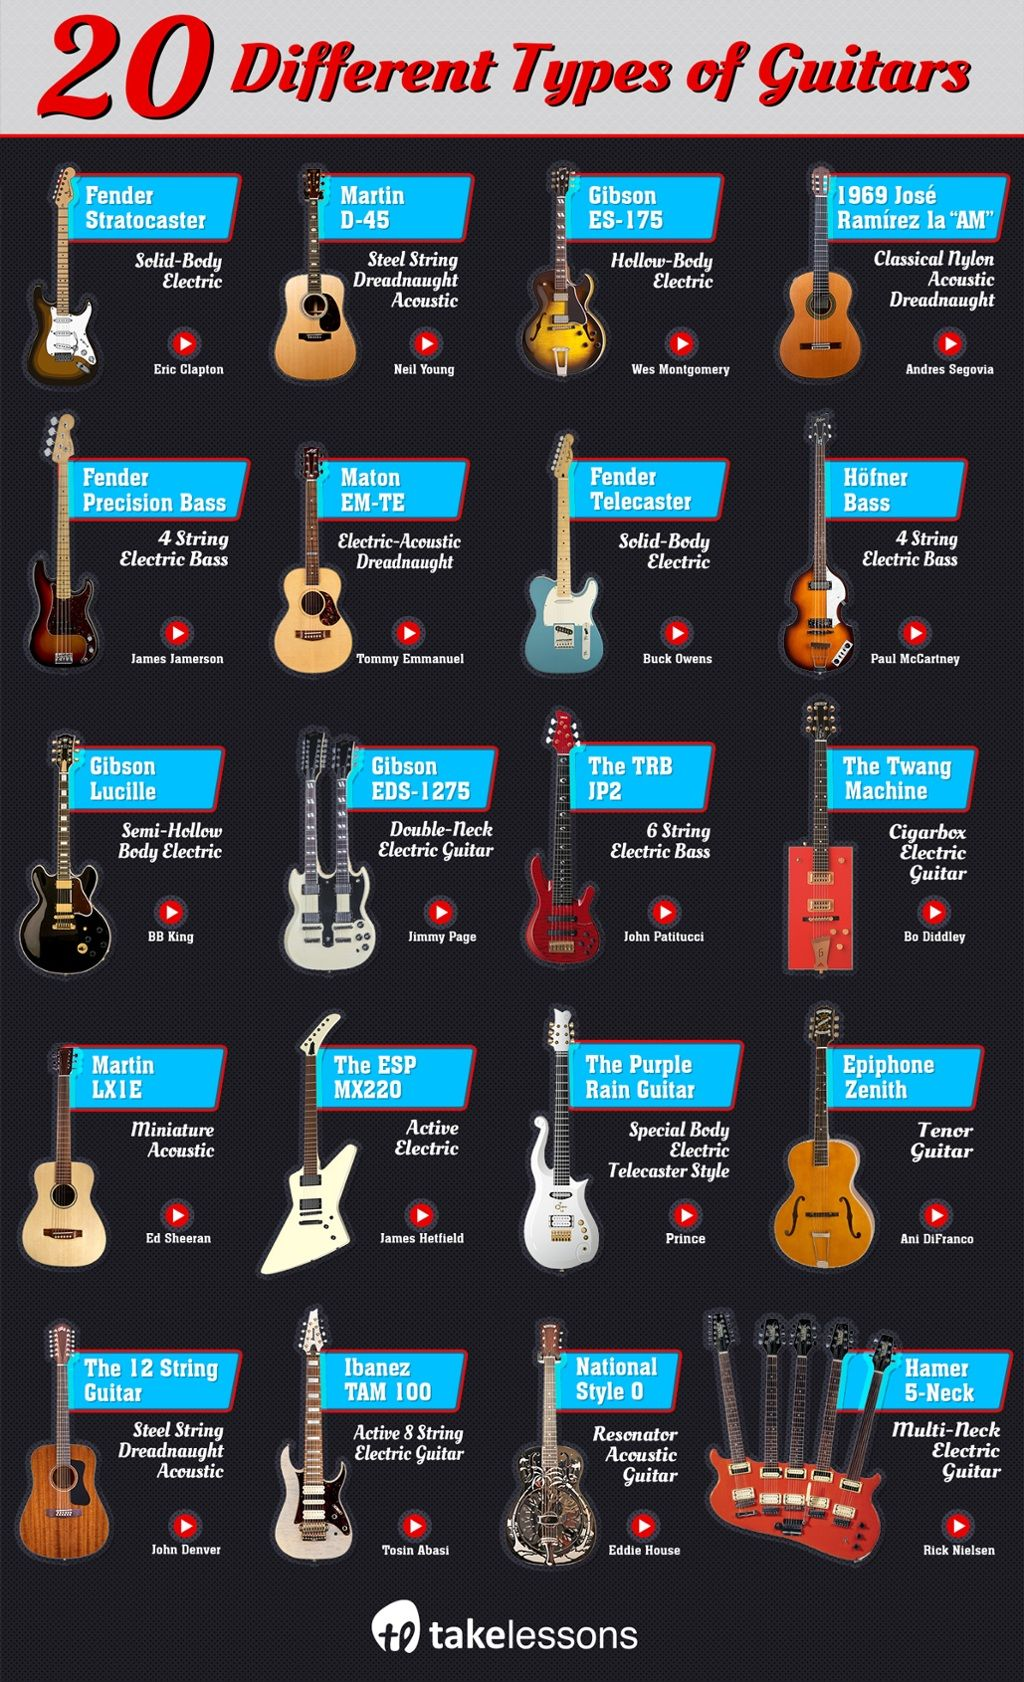 20-Different-Types-of-Guitars-The-Legends-Who-Played-Them-Infographic.jpeg